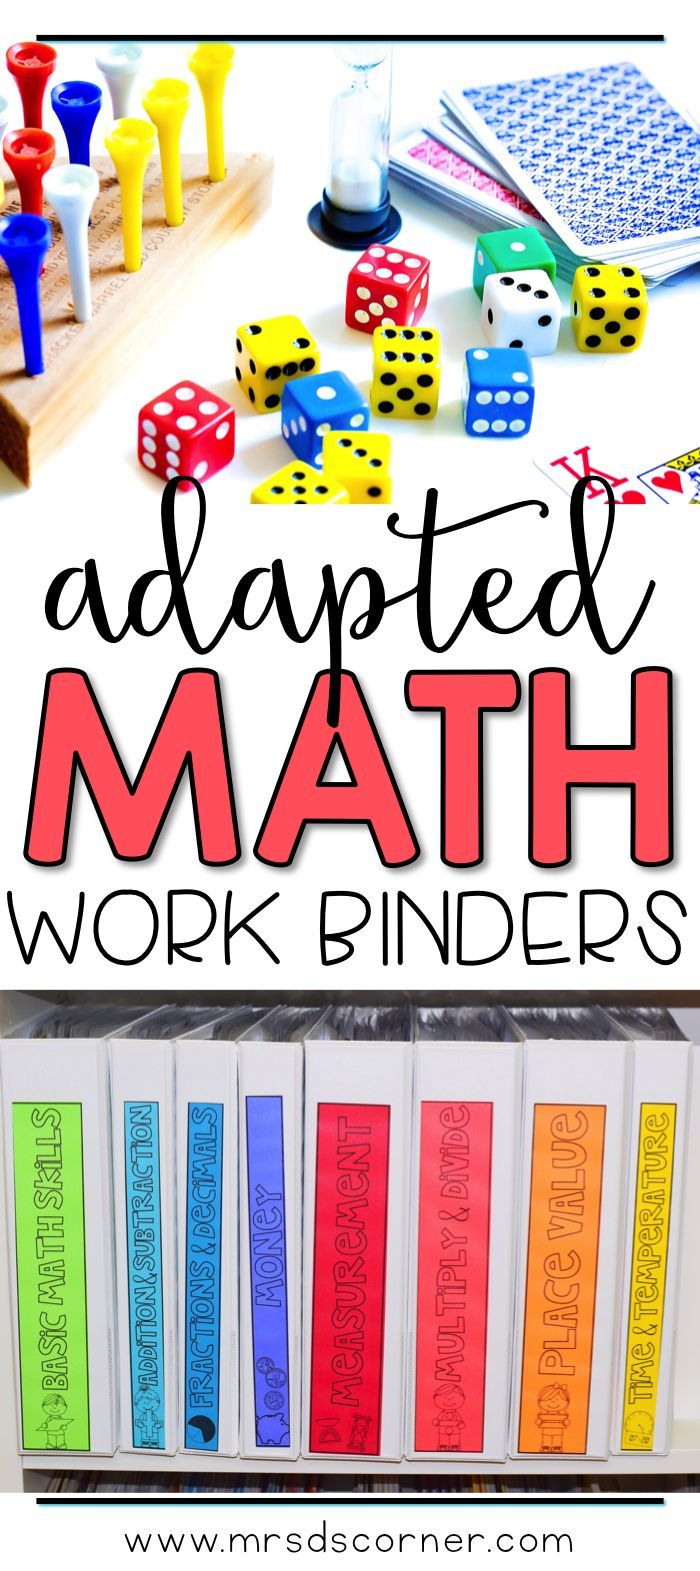 Functional and differentiated skill work that covers mathematics standards-aligned topics for grades K-3, this adapted math work binder is the perfect addition to any elementary special education classroom. Includes topics on: Basic Skills, Place Value, Money, Add & Subtract, Multiply & Divide, Fractions & Decimals, Time & Temperature, and Measurement... and so much more! Adapted Work Binders only at Mrs. D's Corner.